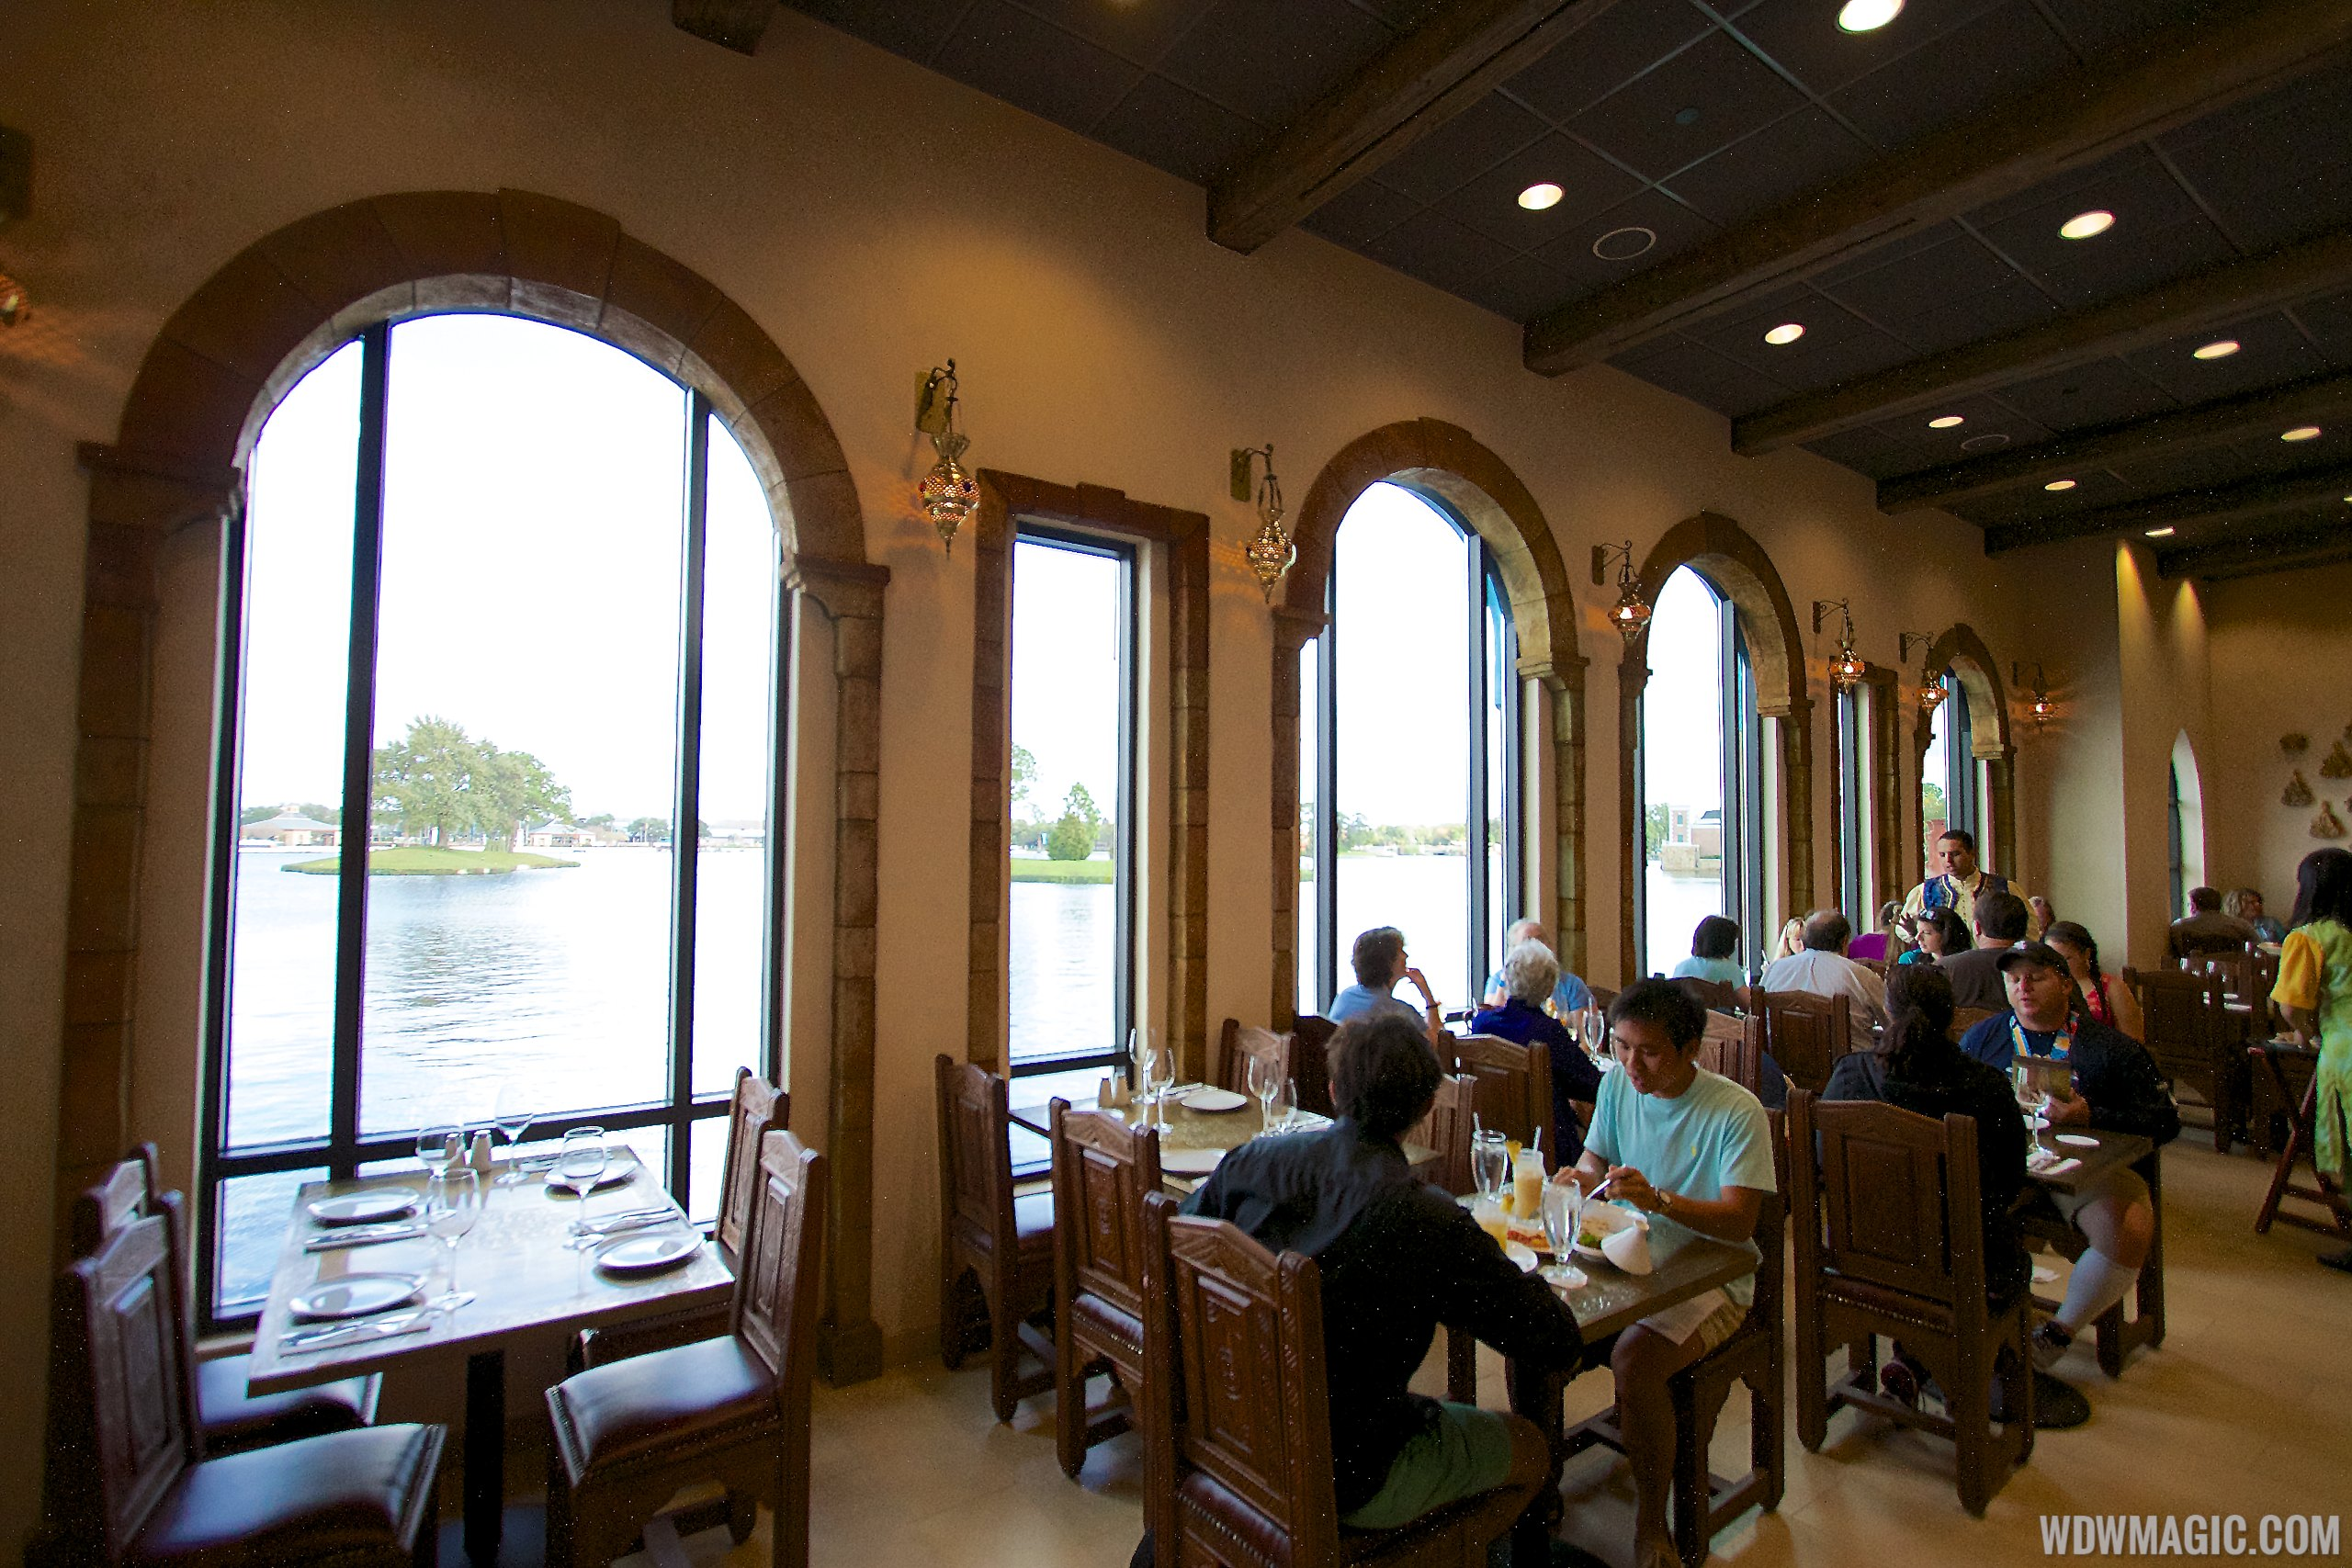 Spice Road Table - Indoor dining room overlooking World Showcase Lagoon